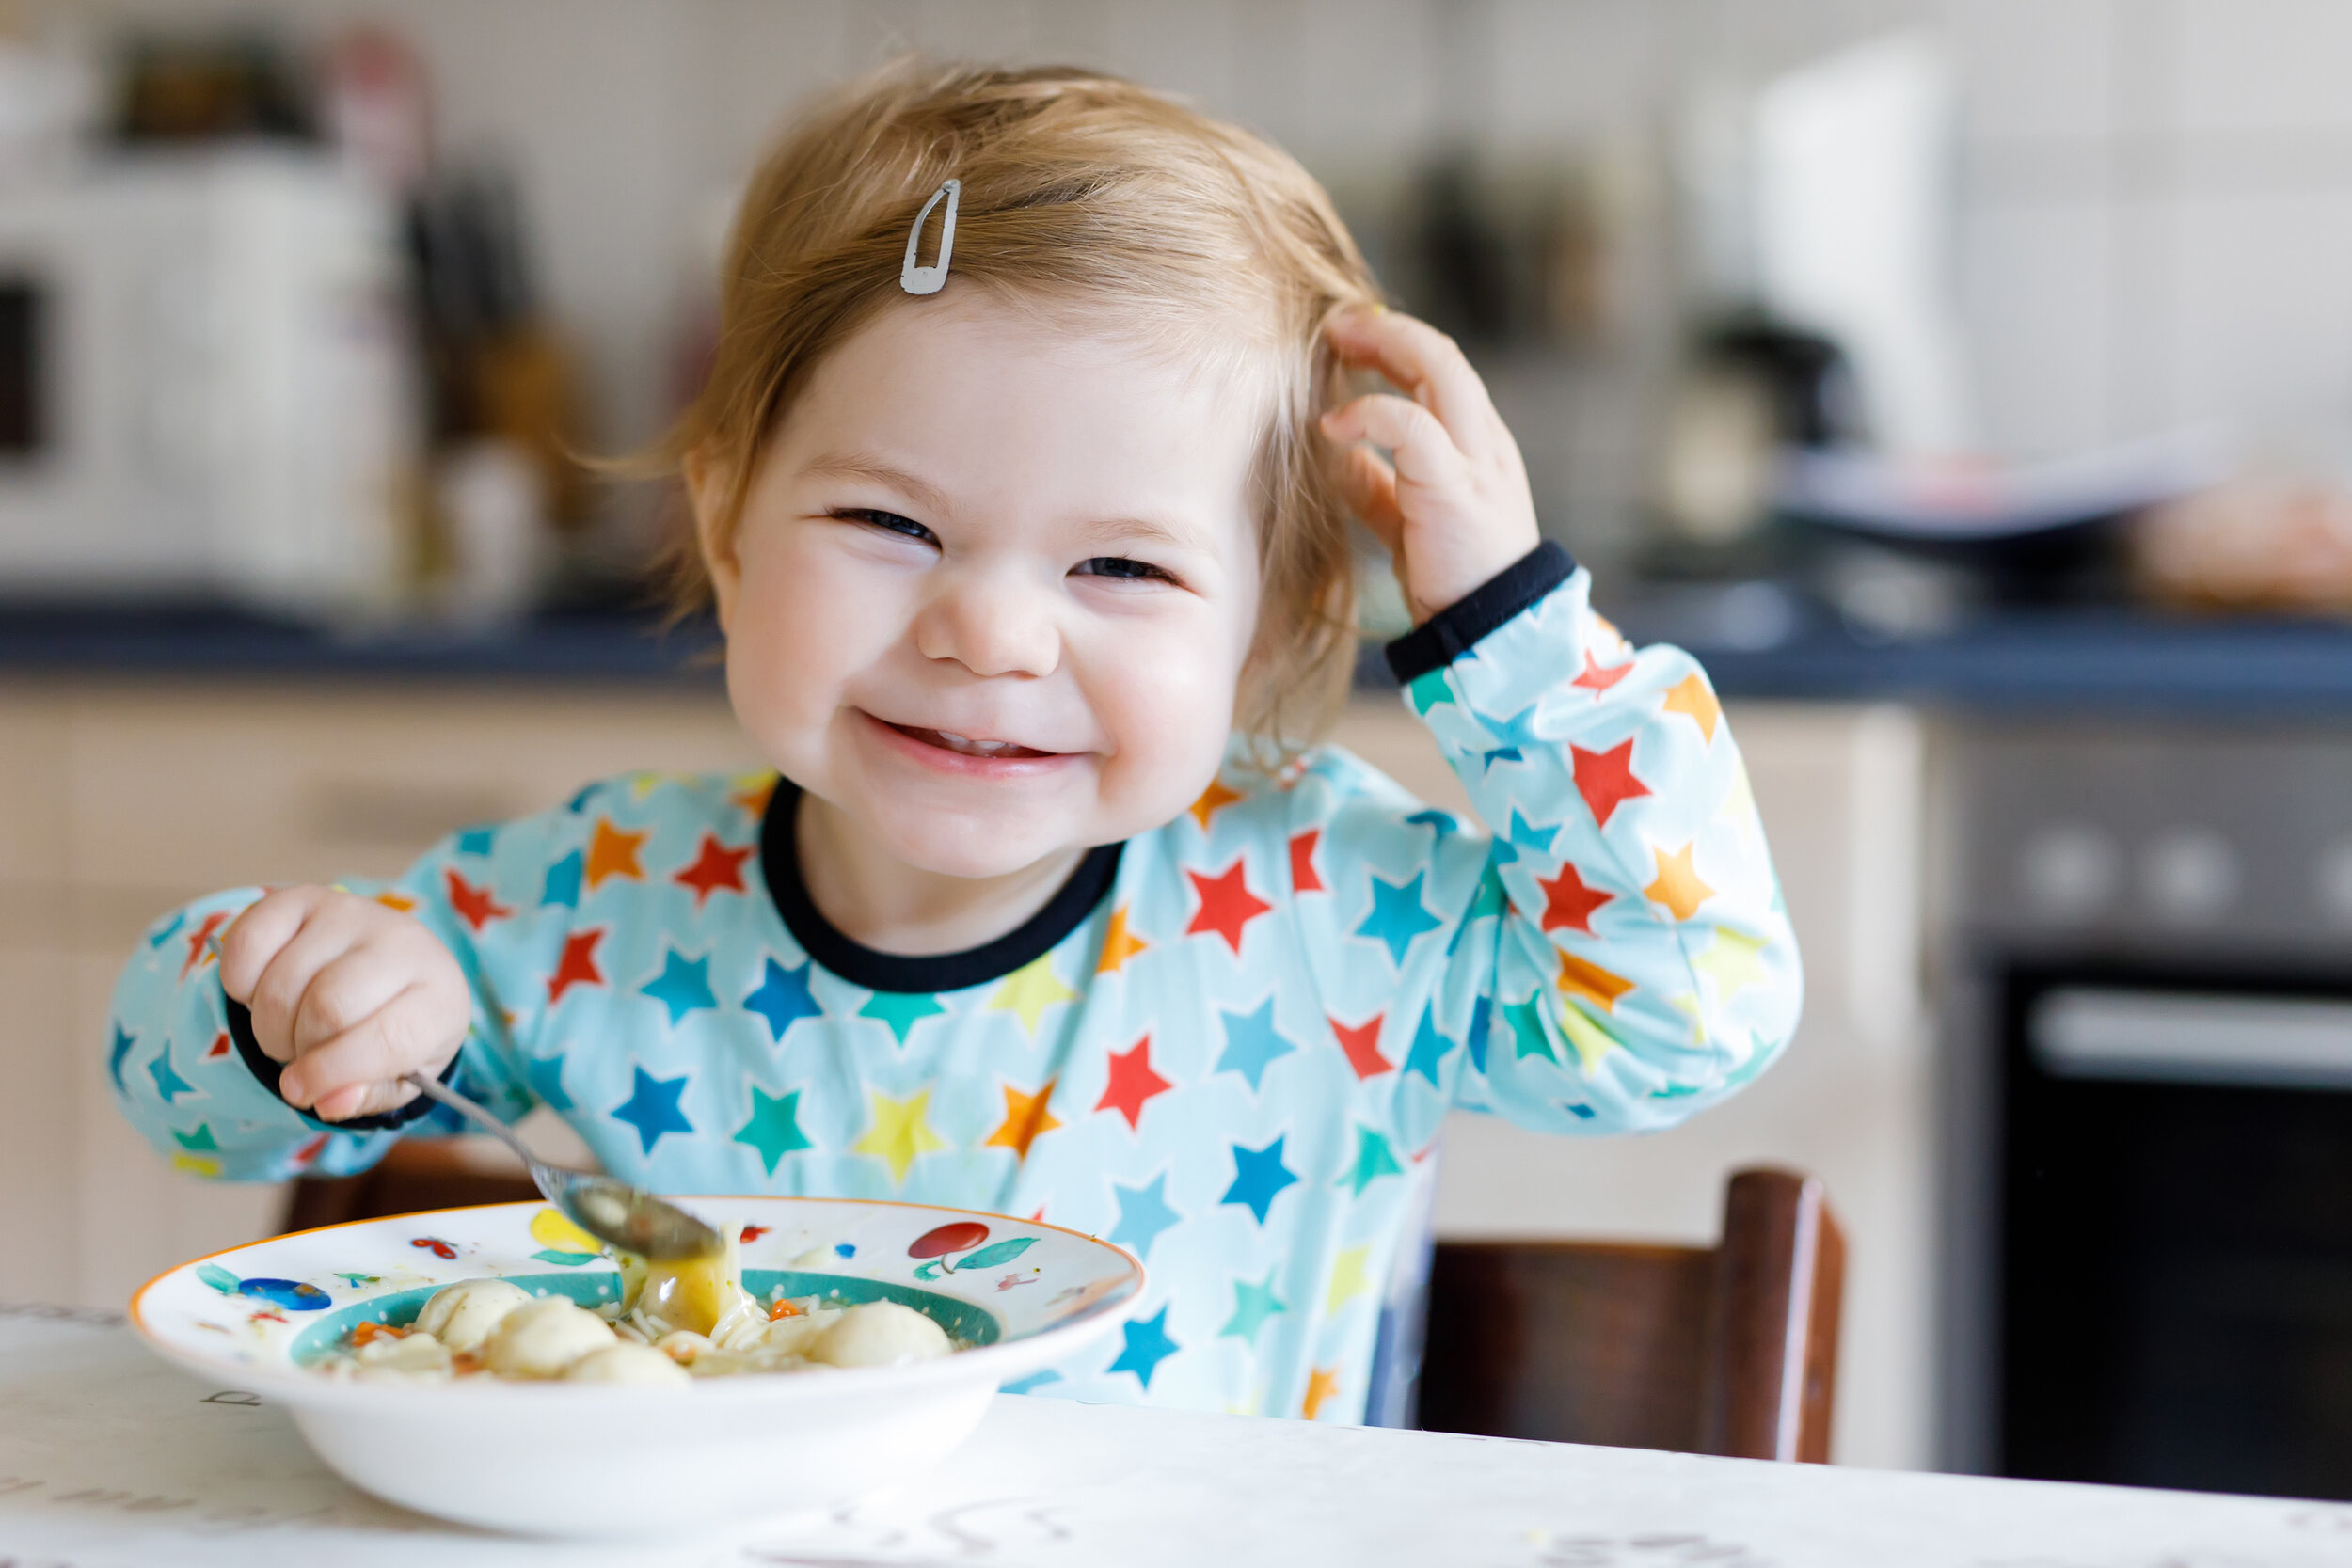 bigstock-Adorable-Baby-Girl-Eating-From-233381668.jpg